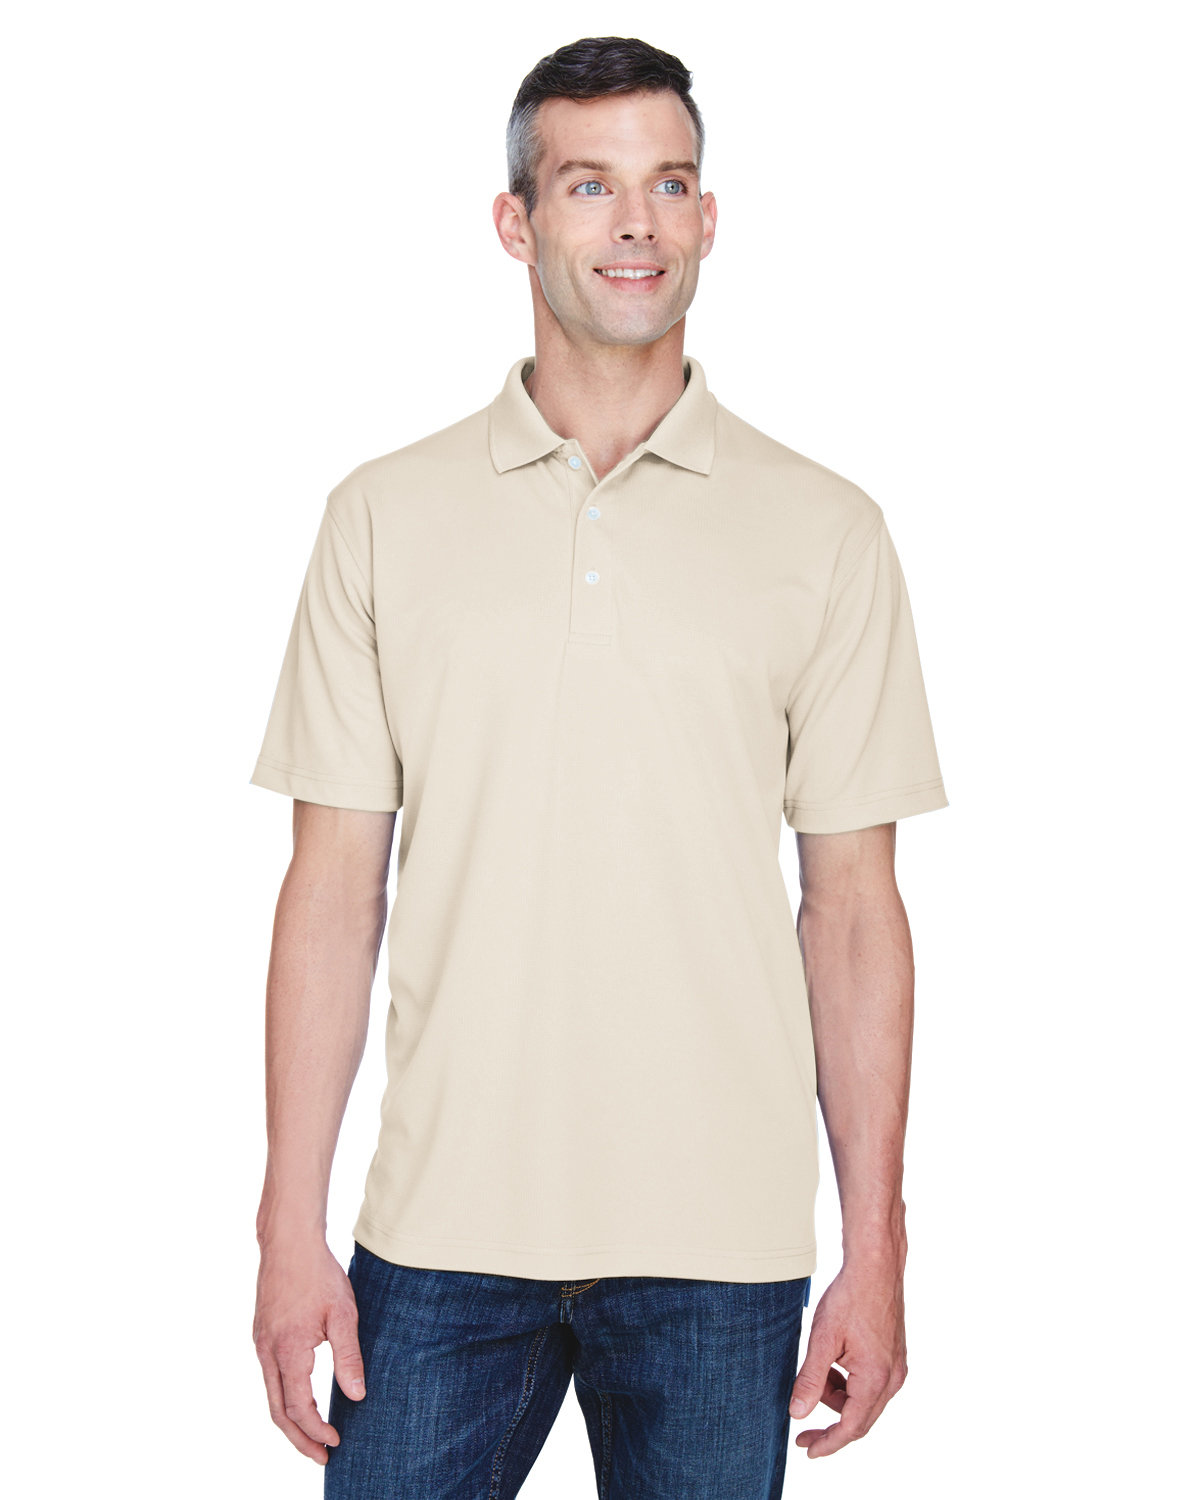 UltraClub Men's Cool & Dry Stain-Release Performance Polo STONE